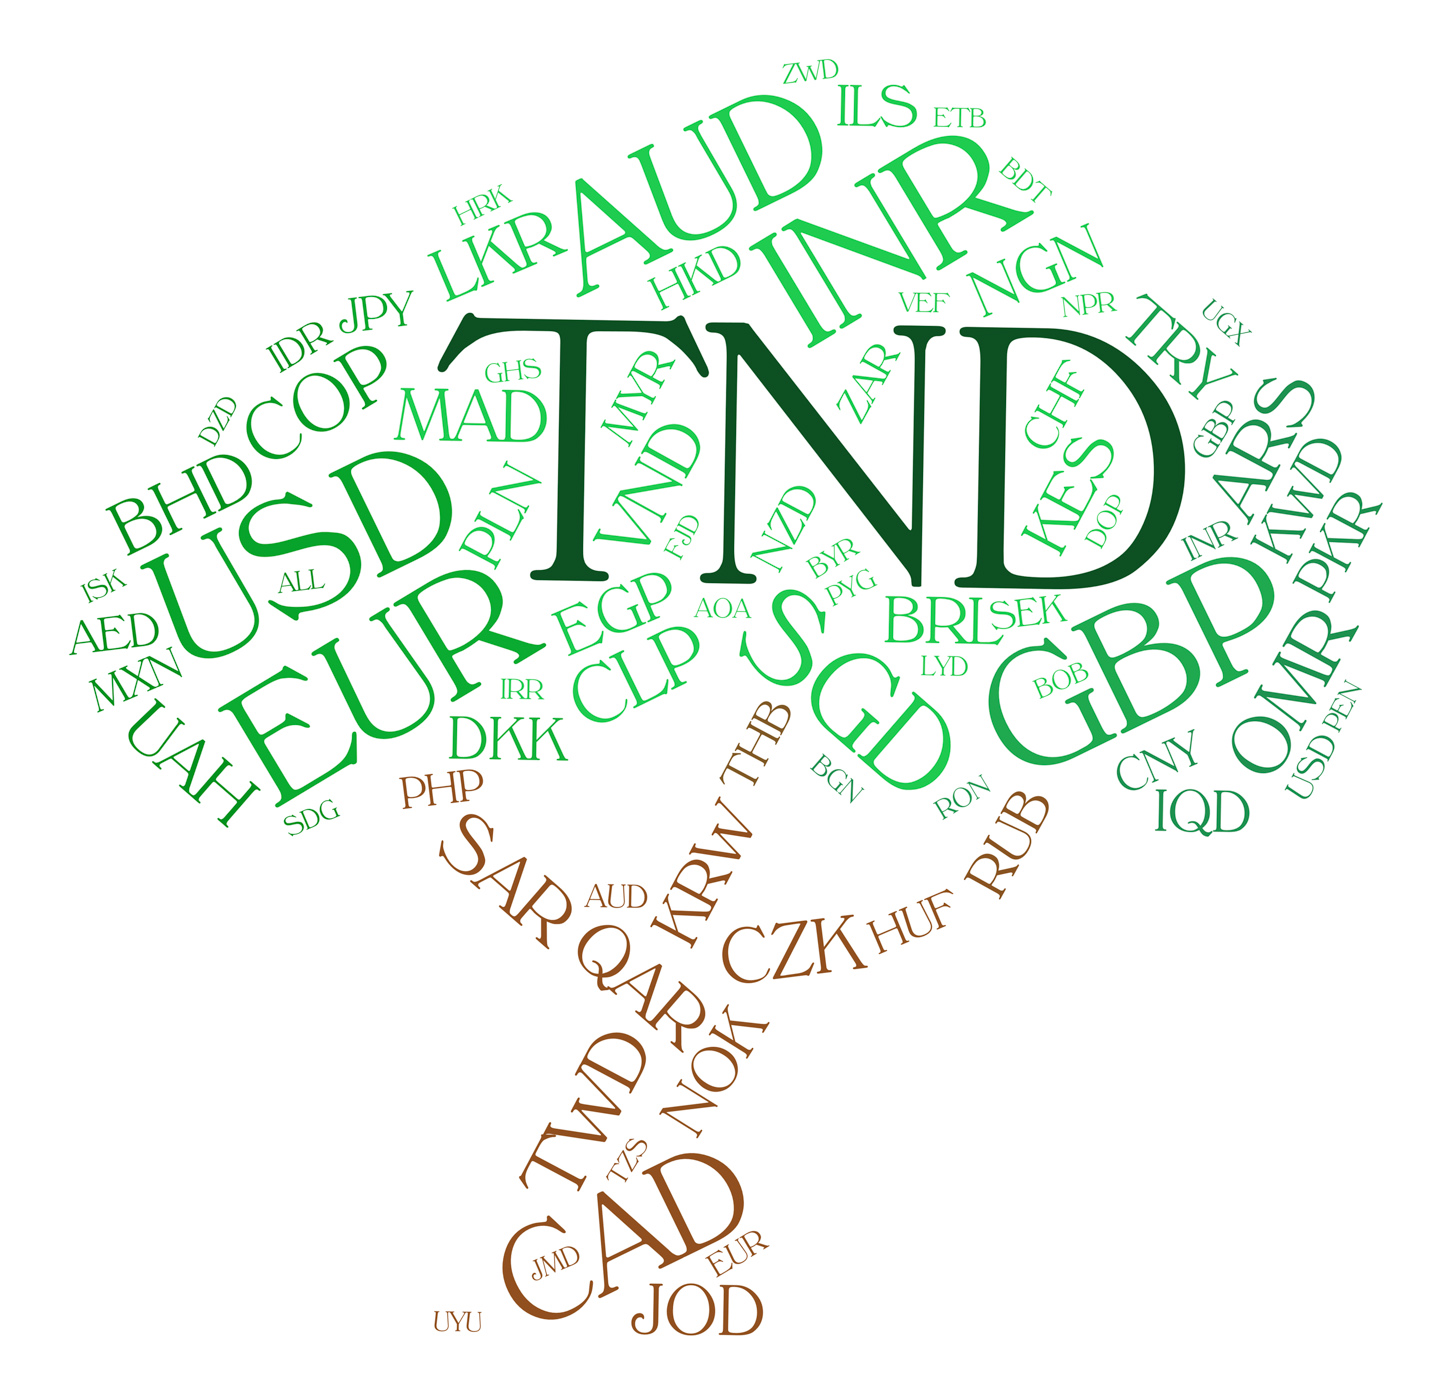 Tnd currency shows worldwide trading and broker photo